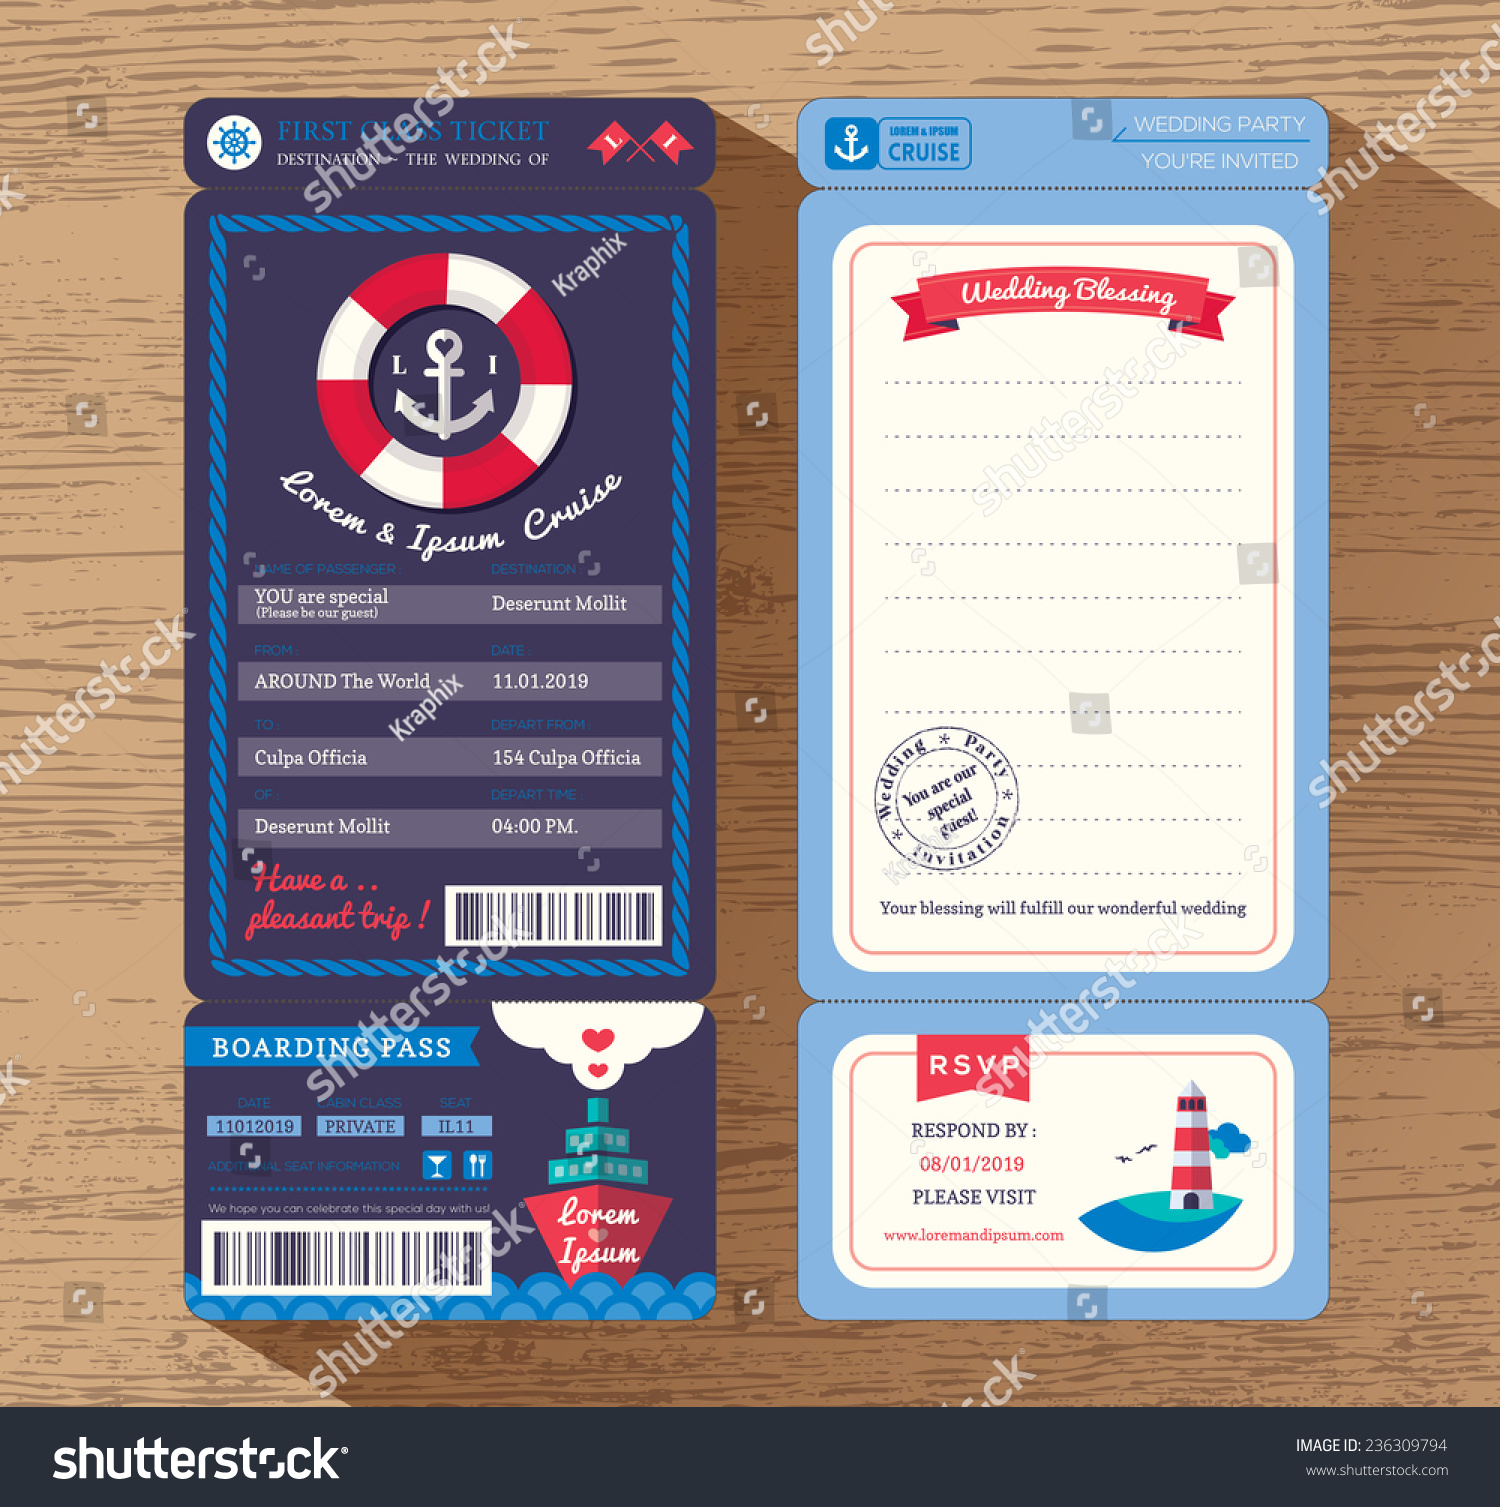 Cruise Ship Boarding Pass Ticket Wedding Vector 236309794 – Ticket Design Template